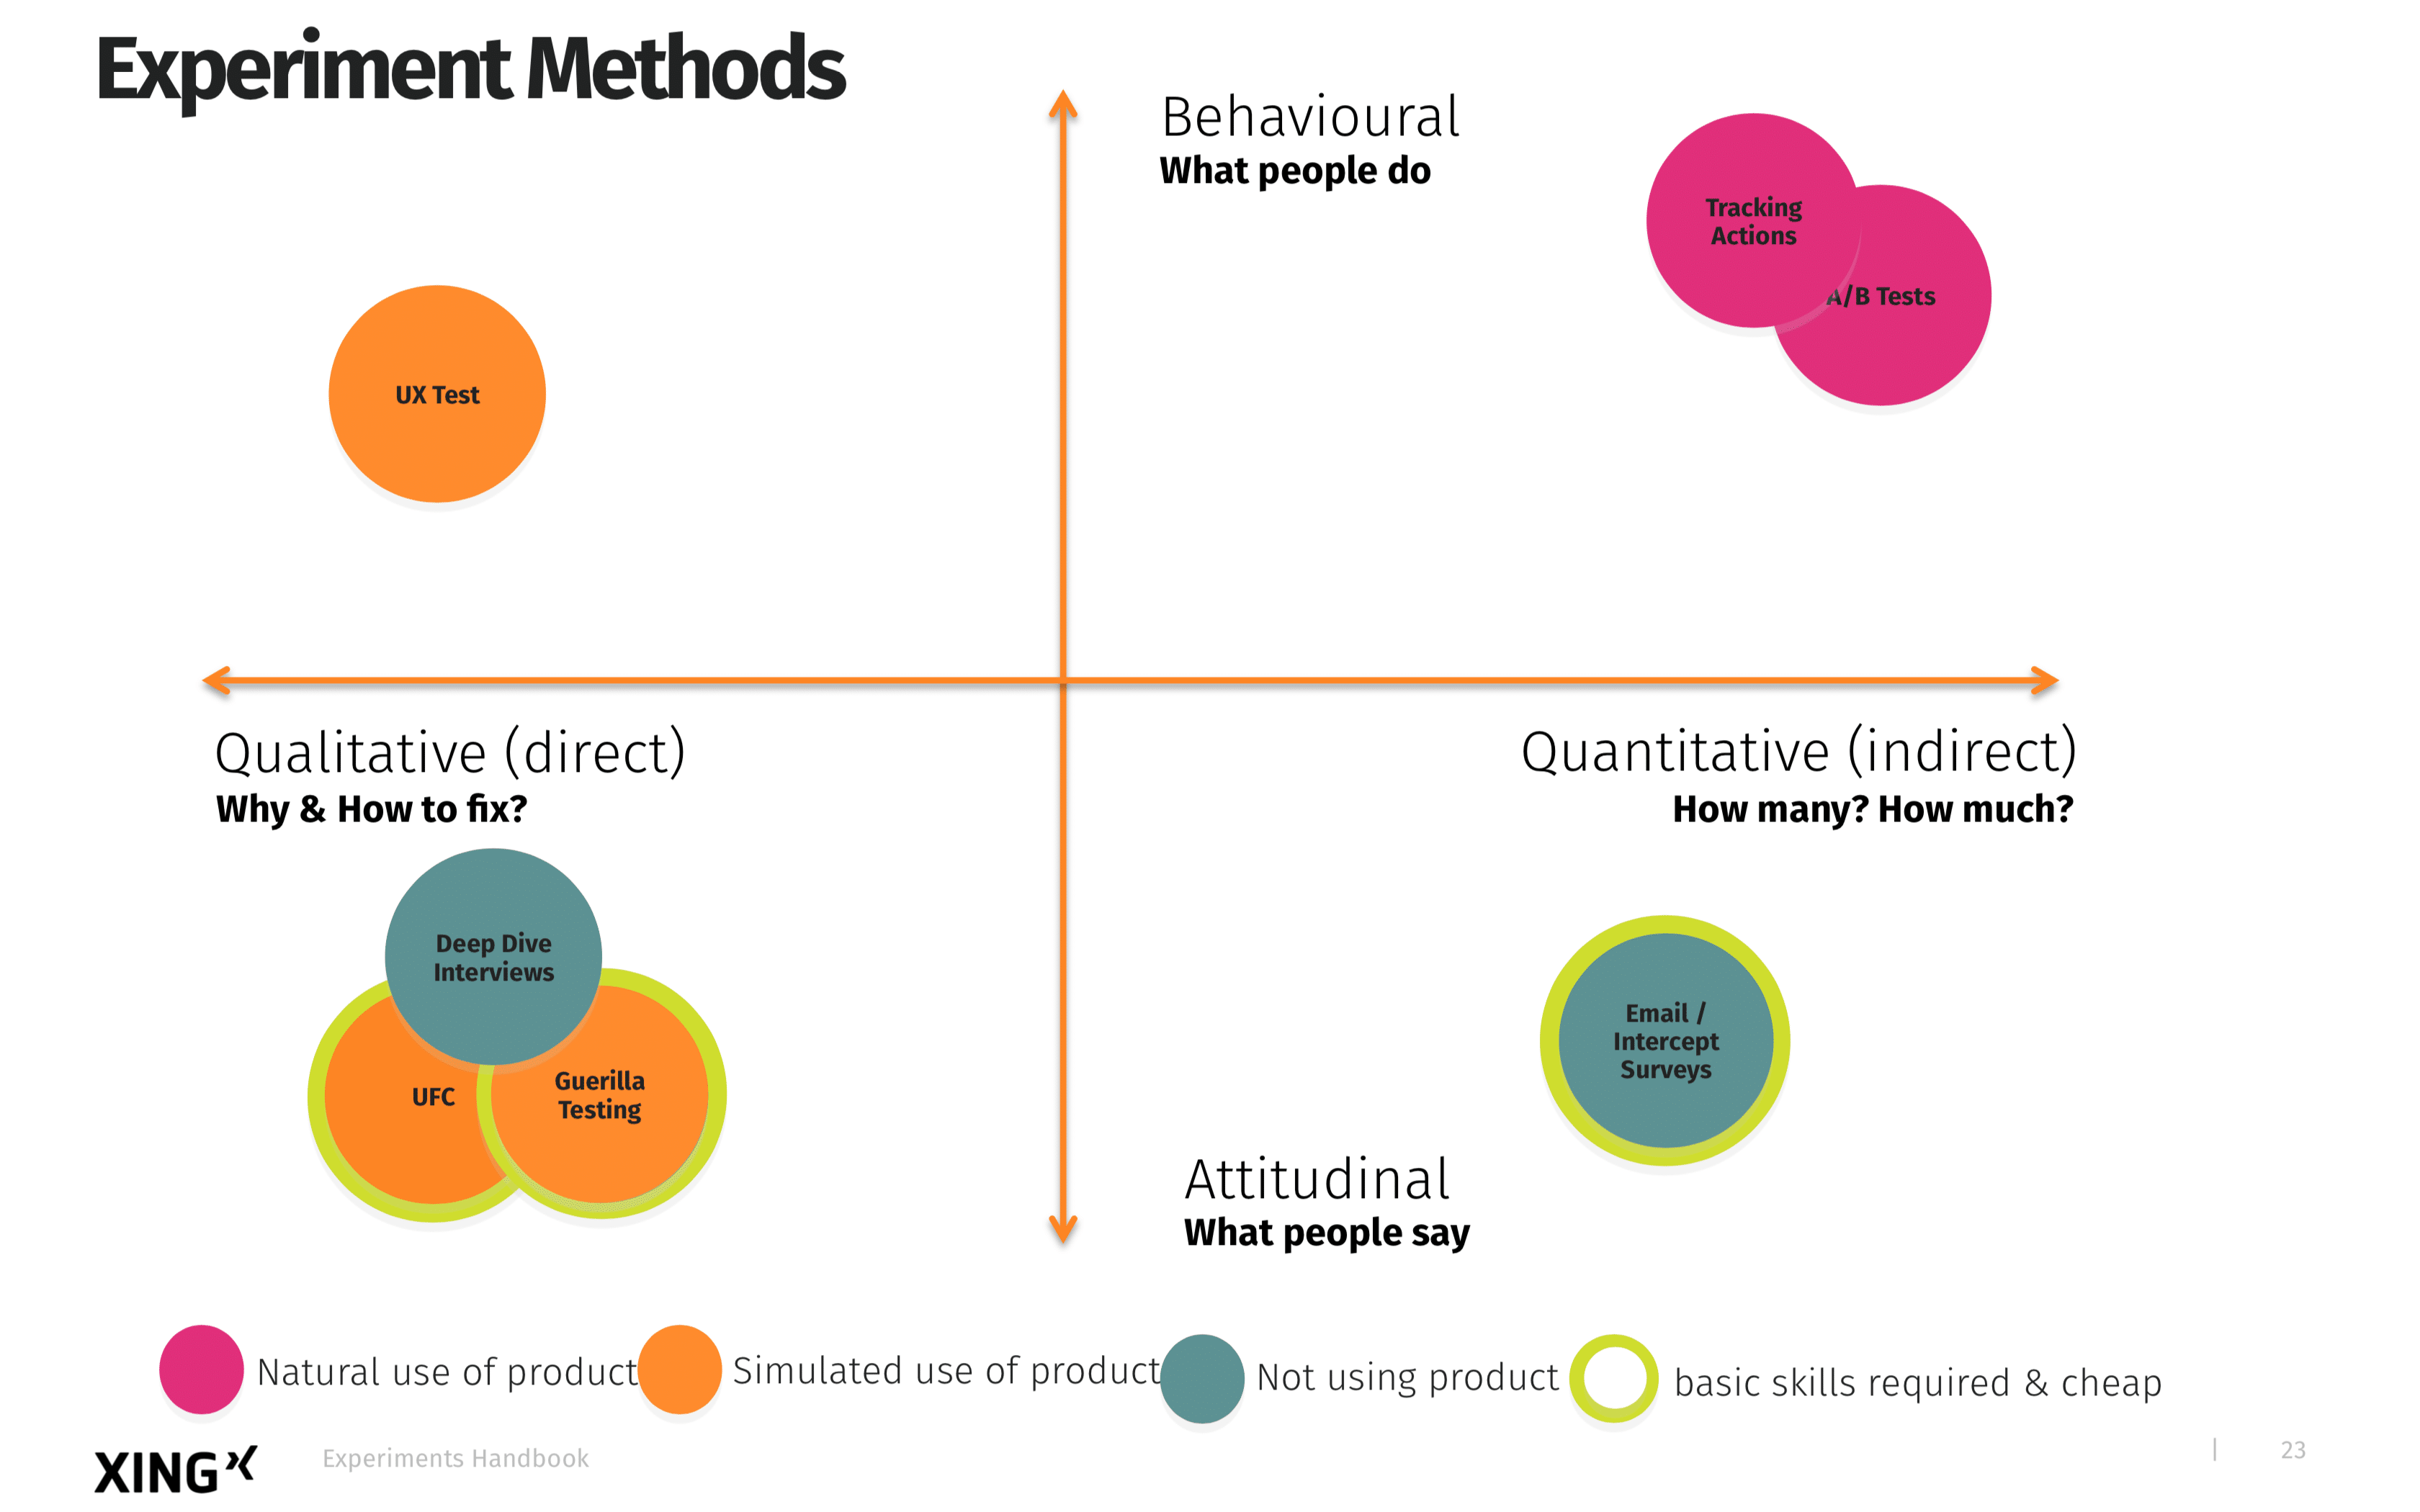 Experiment Methods for researching User Needs and validating assumptions